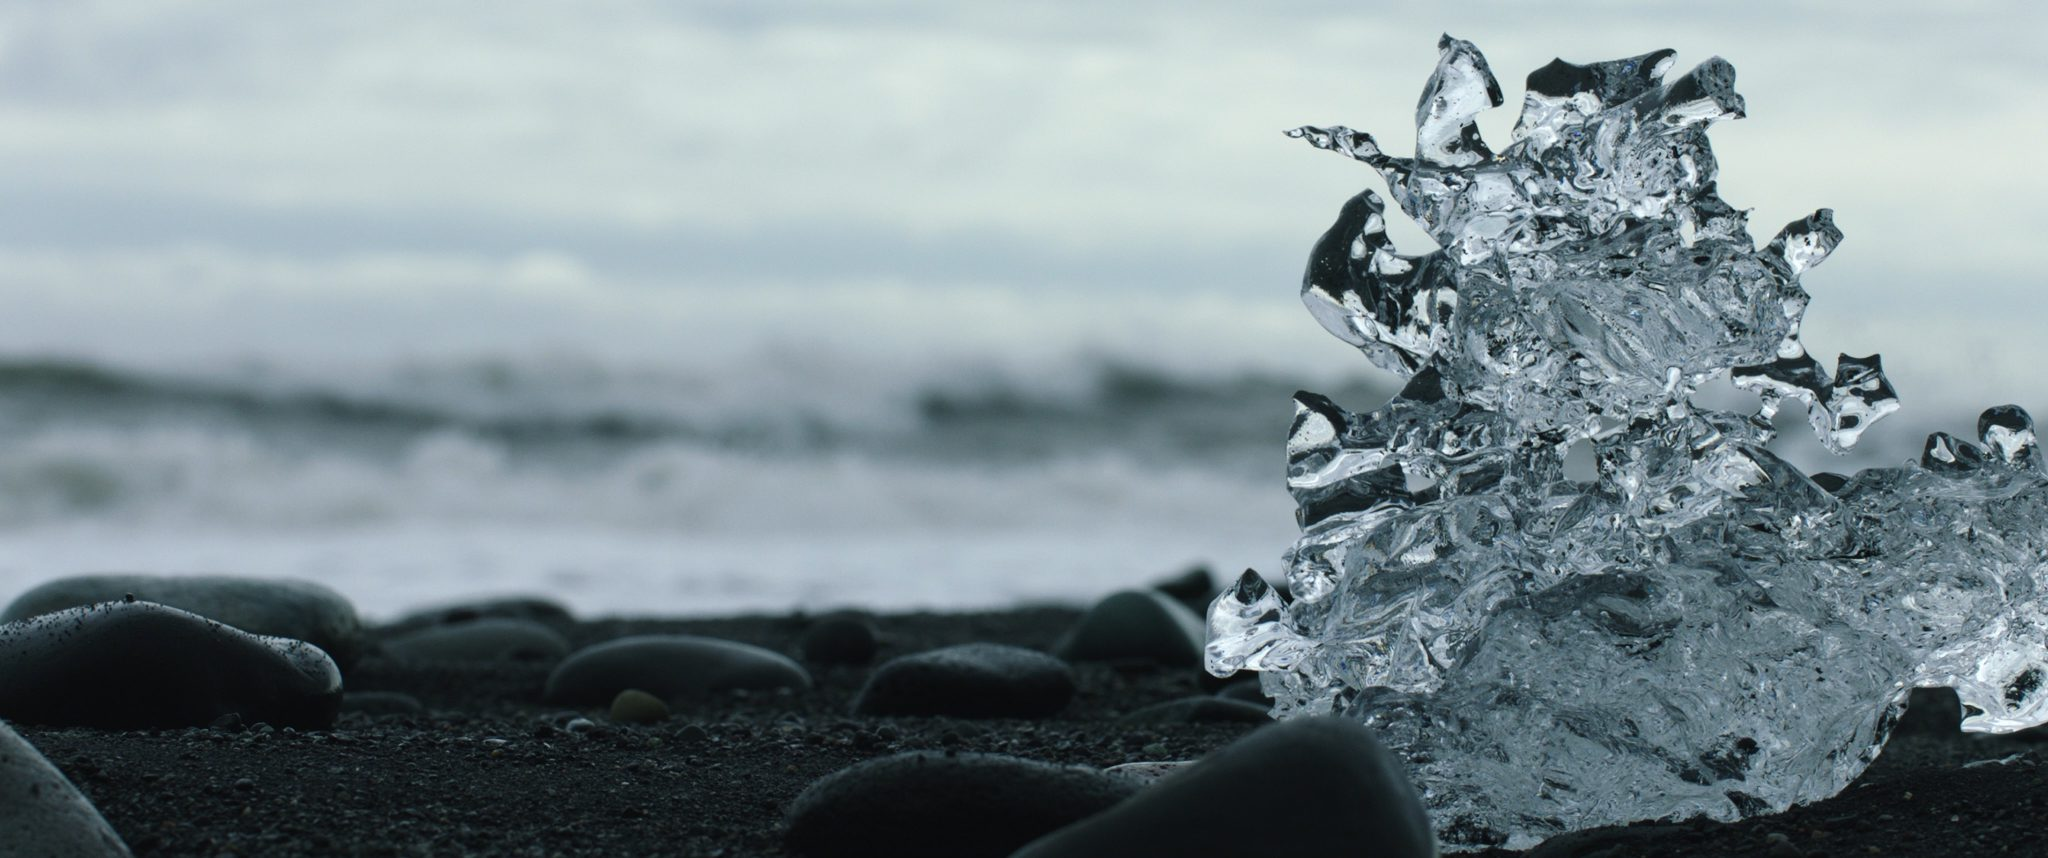 Ice Sculpture on Black Beach